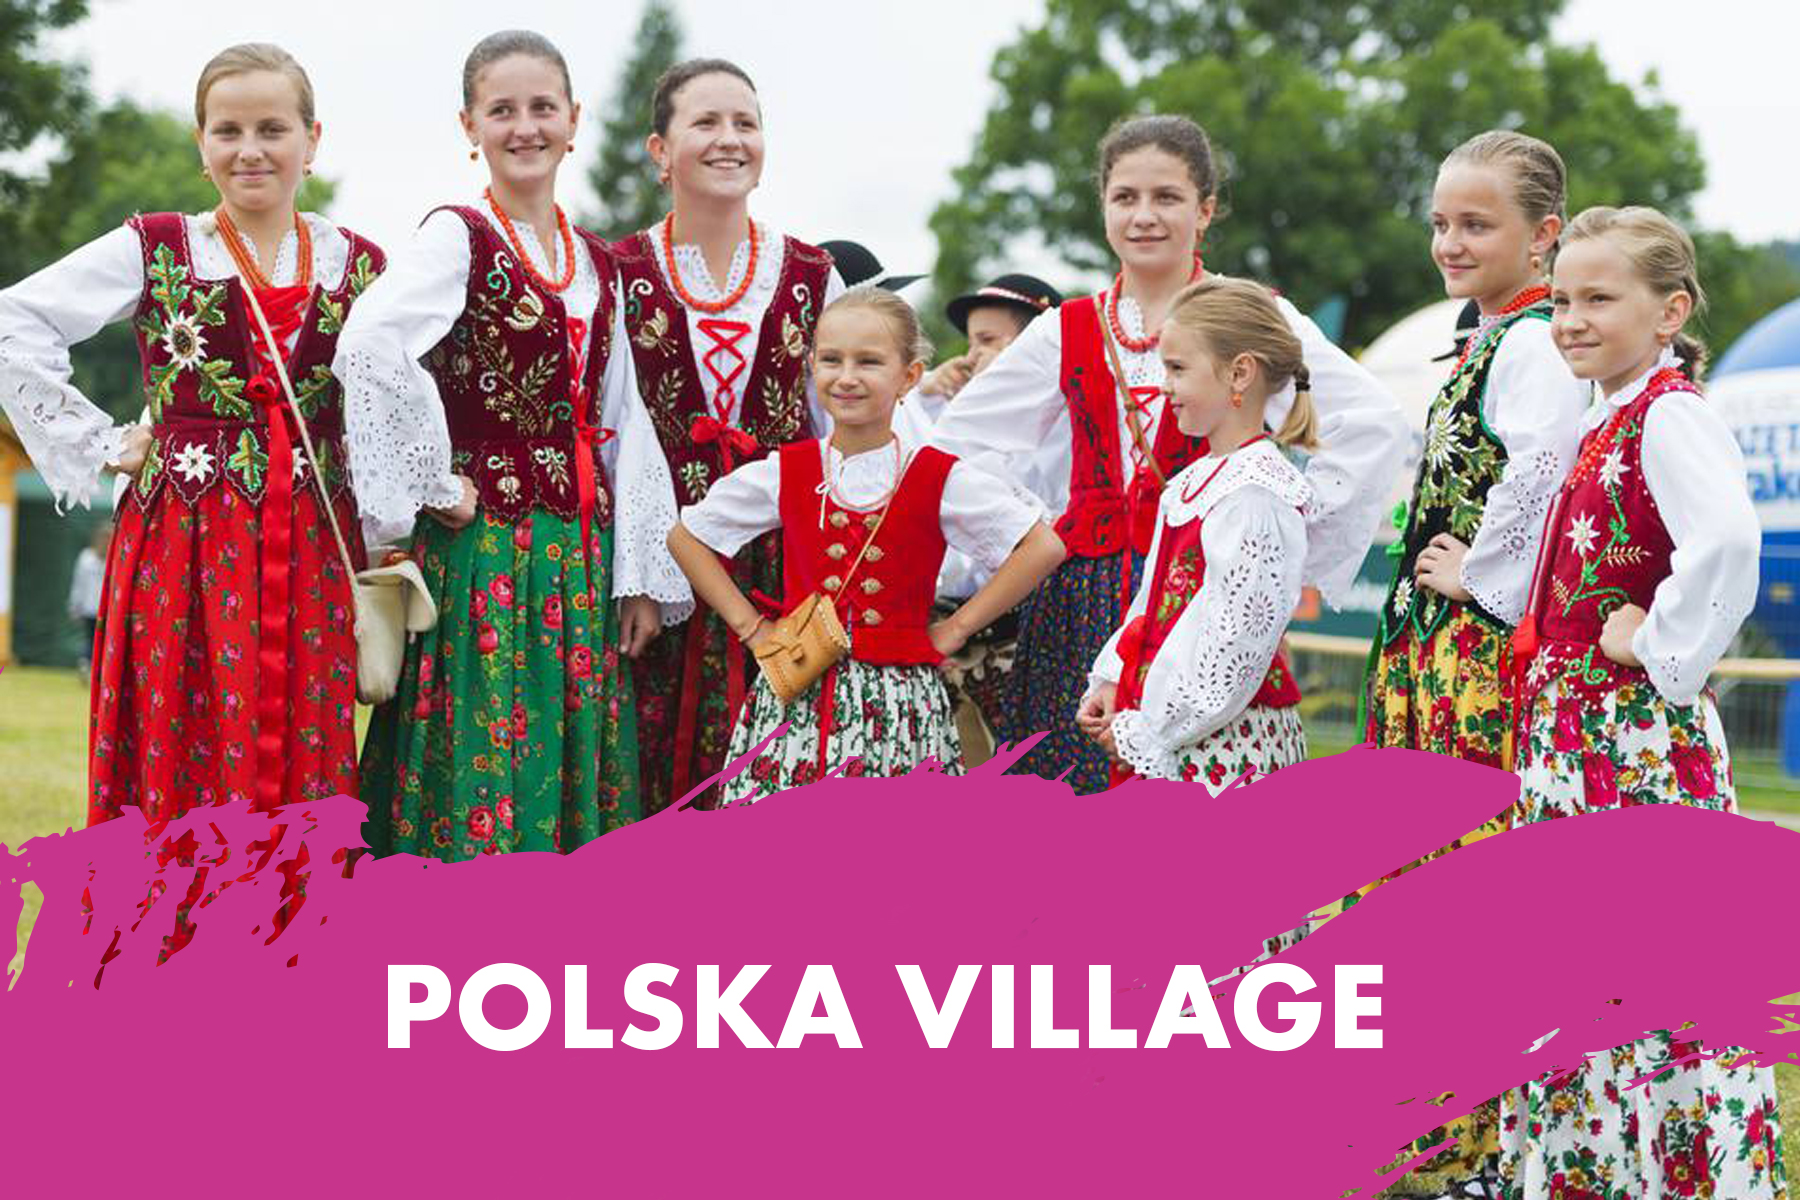 polska-village_large.jpg